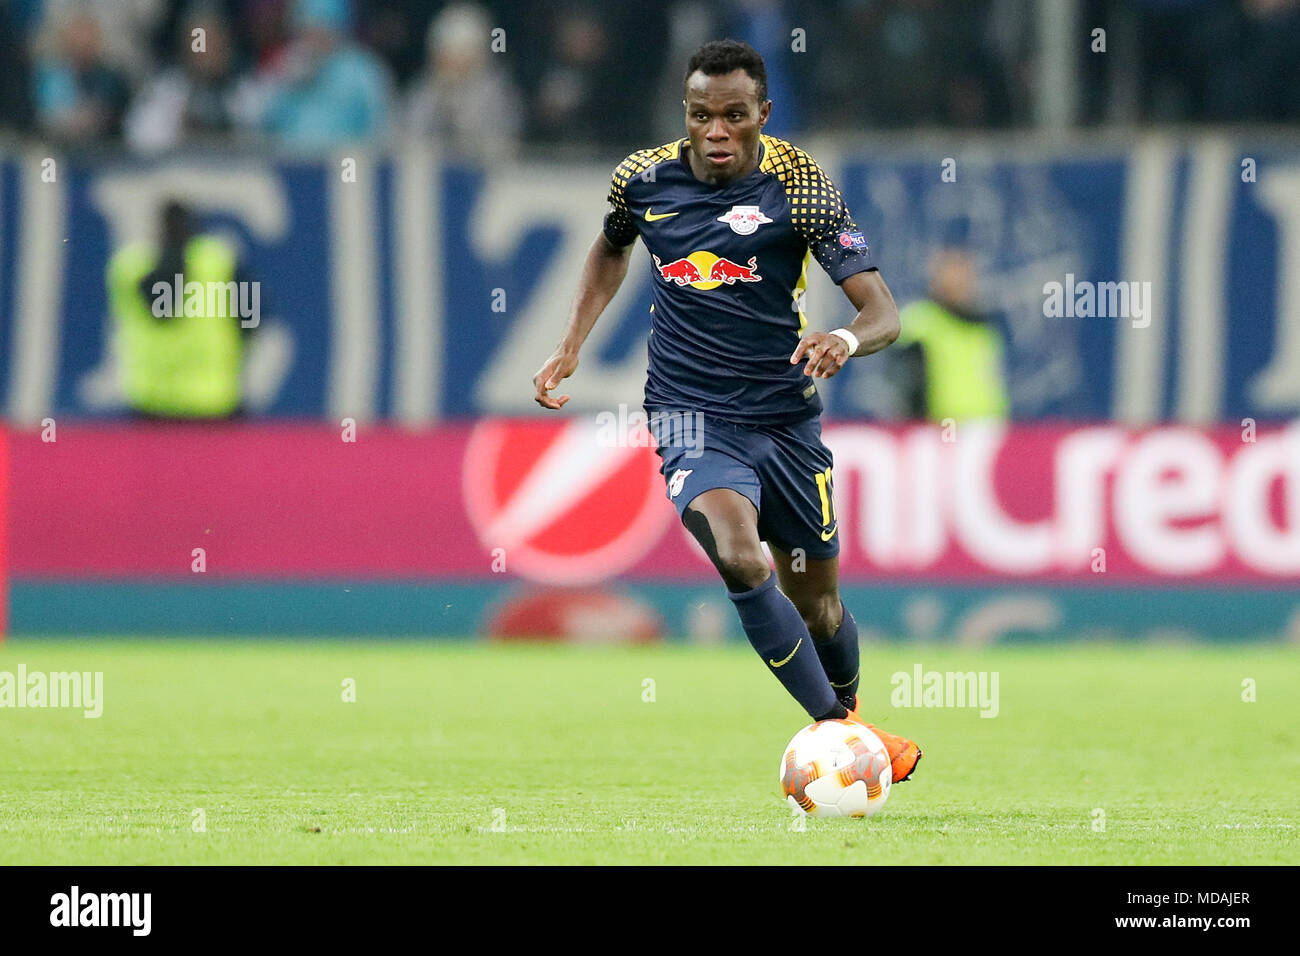 12 April 2018, Marseille, France: soccer, Europa League, Olympique Marseille vs RB Leipzig, Stade Orange Vélodrome: Leipzig's Bruma in action. Photo: Jan Woitas/dpa-Zentralbild/dpa - Stock Image